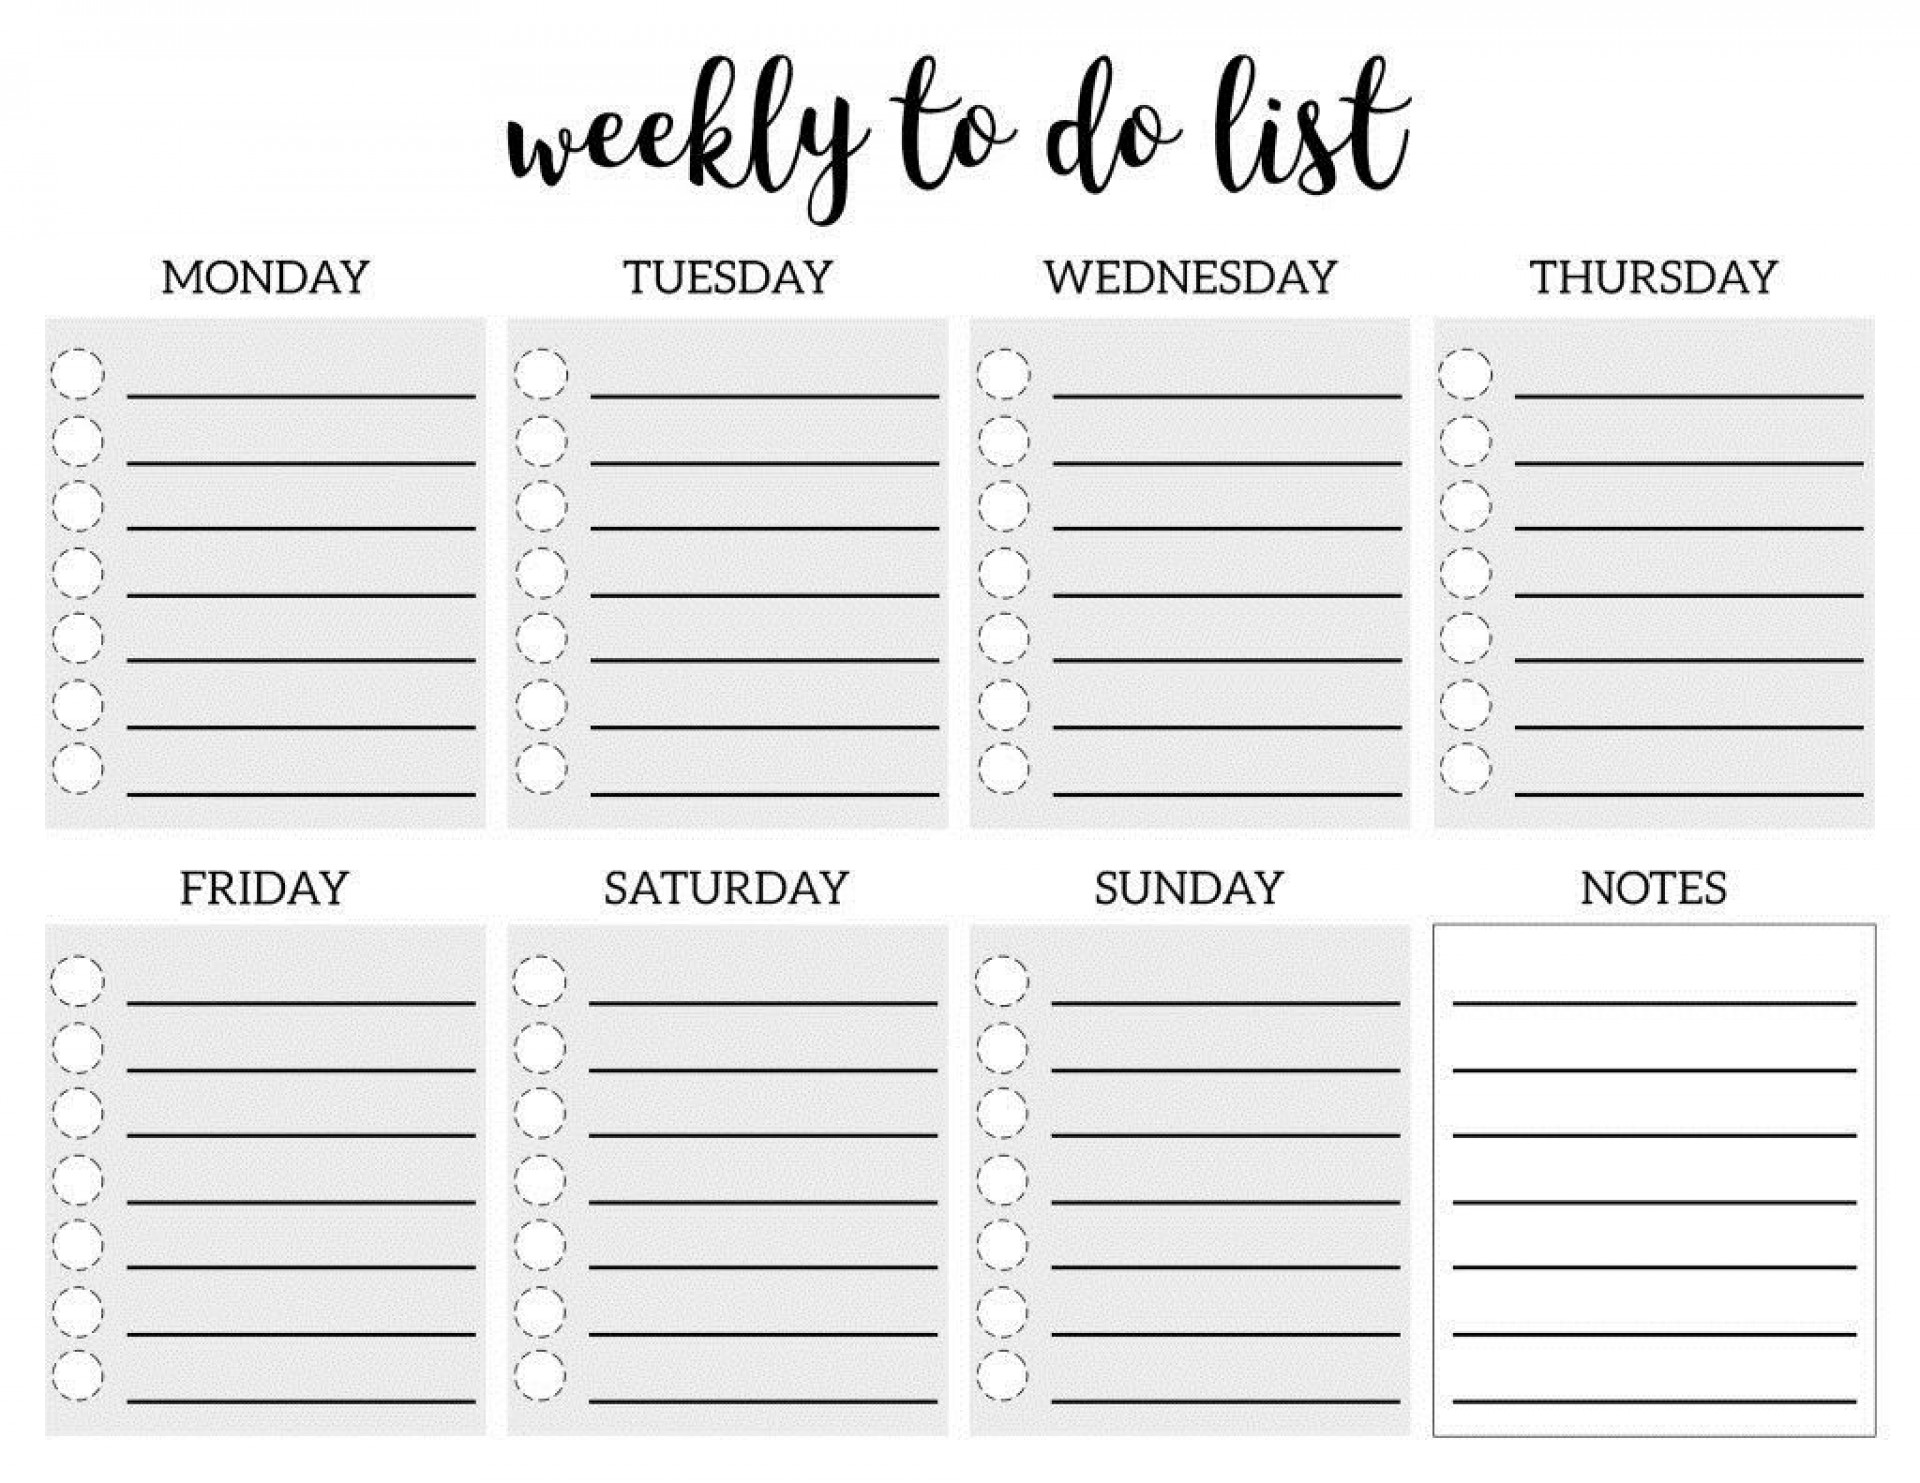 006 Fascinating Weekly Todo List Template Picture  To Do Pinterest Task Excel Daily Pdf1920